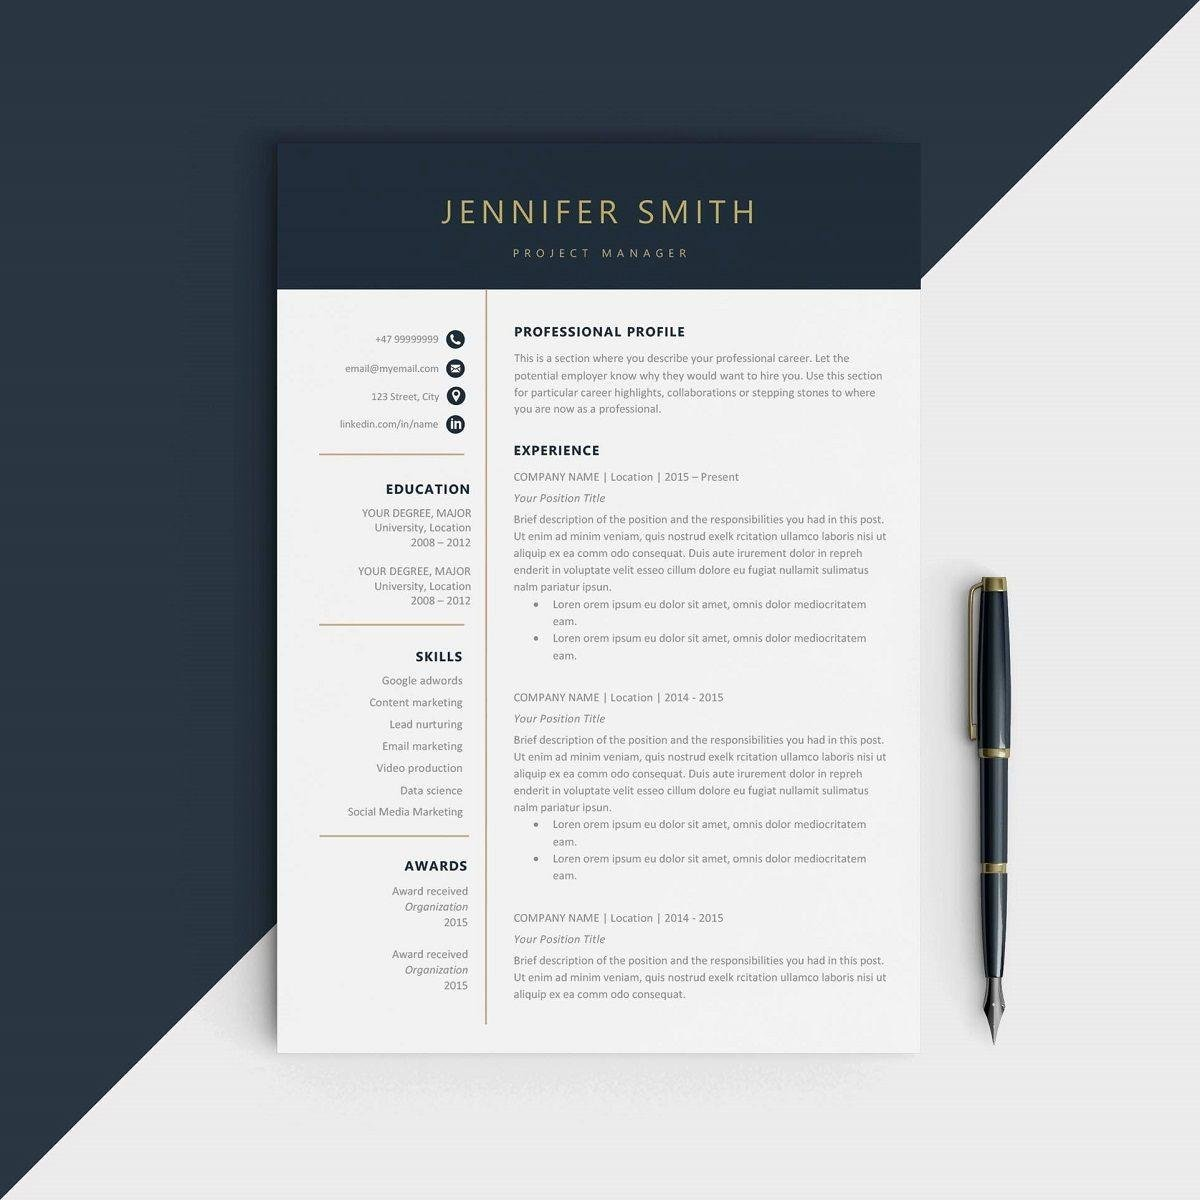 Modern resume templates 18 examples a complete guide for Resmue templates